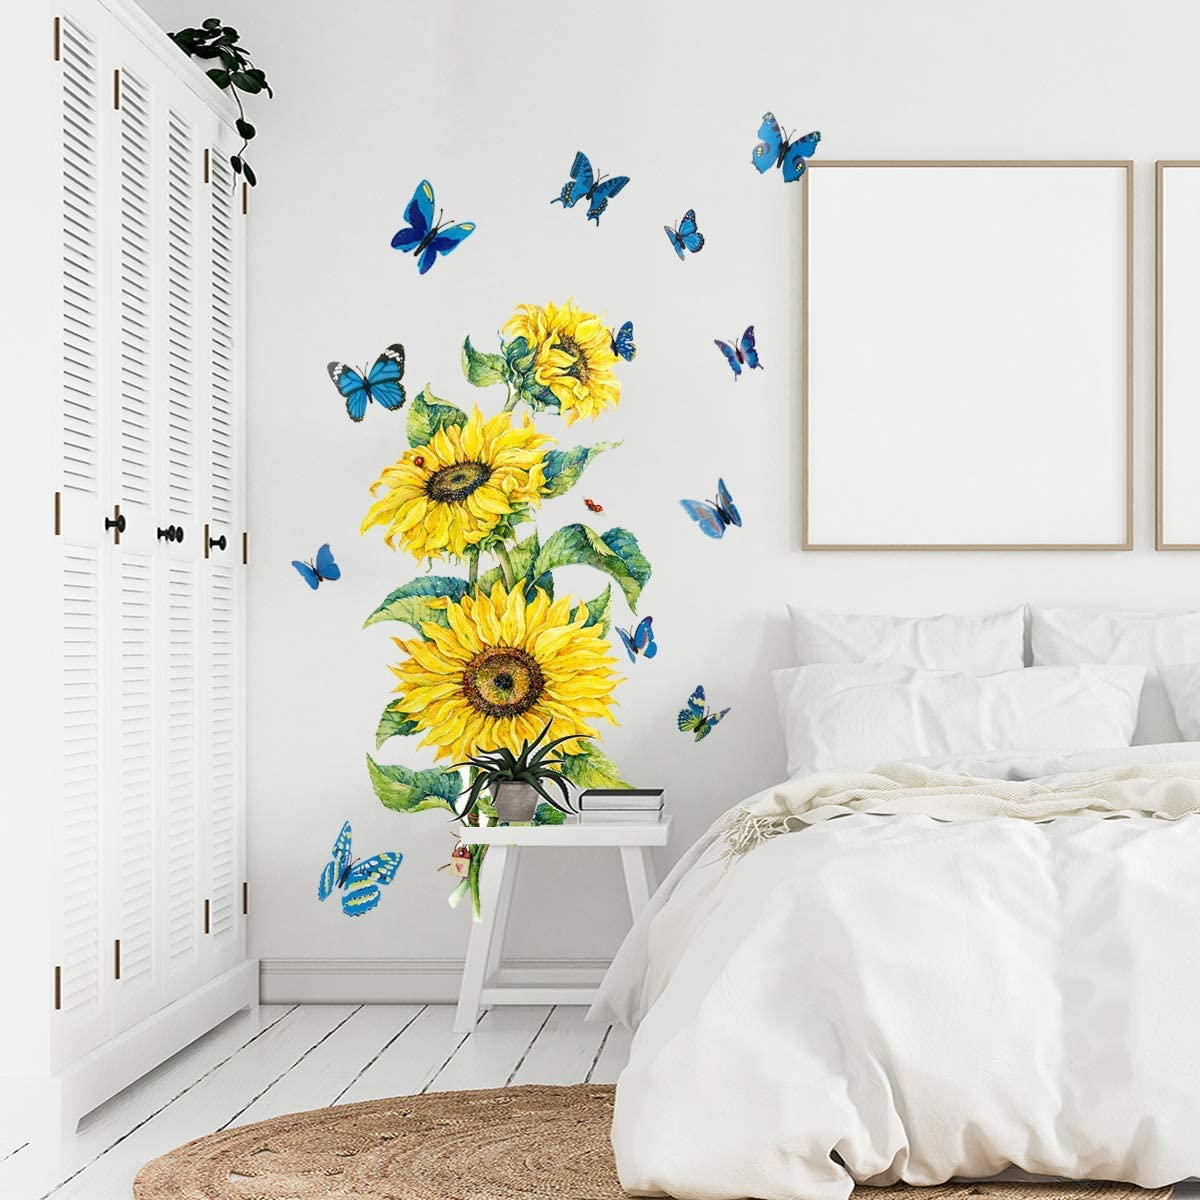 Sunflower Wall Stickers with 12Pcs 3D Blue Butterfly, EsLuker.ly Vinyl Sunflower Floral Wallpaper Decals Removable DIY Yellow Flower Art Mural Decor for Living Room Bedroom Nursery (ZSZ1339)